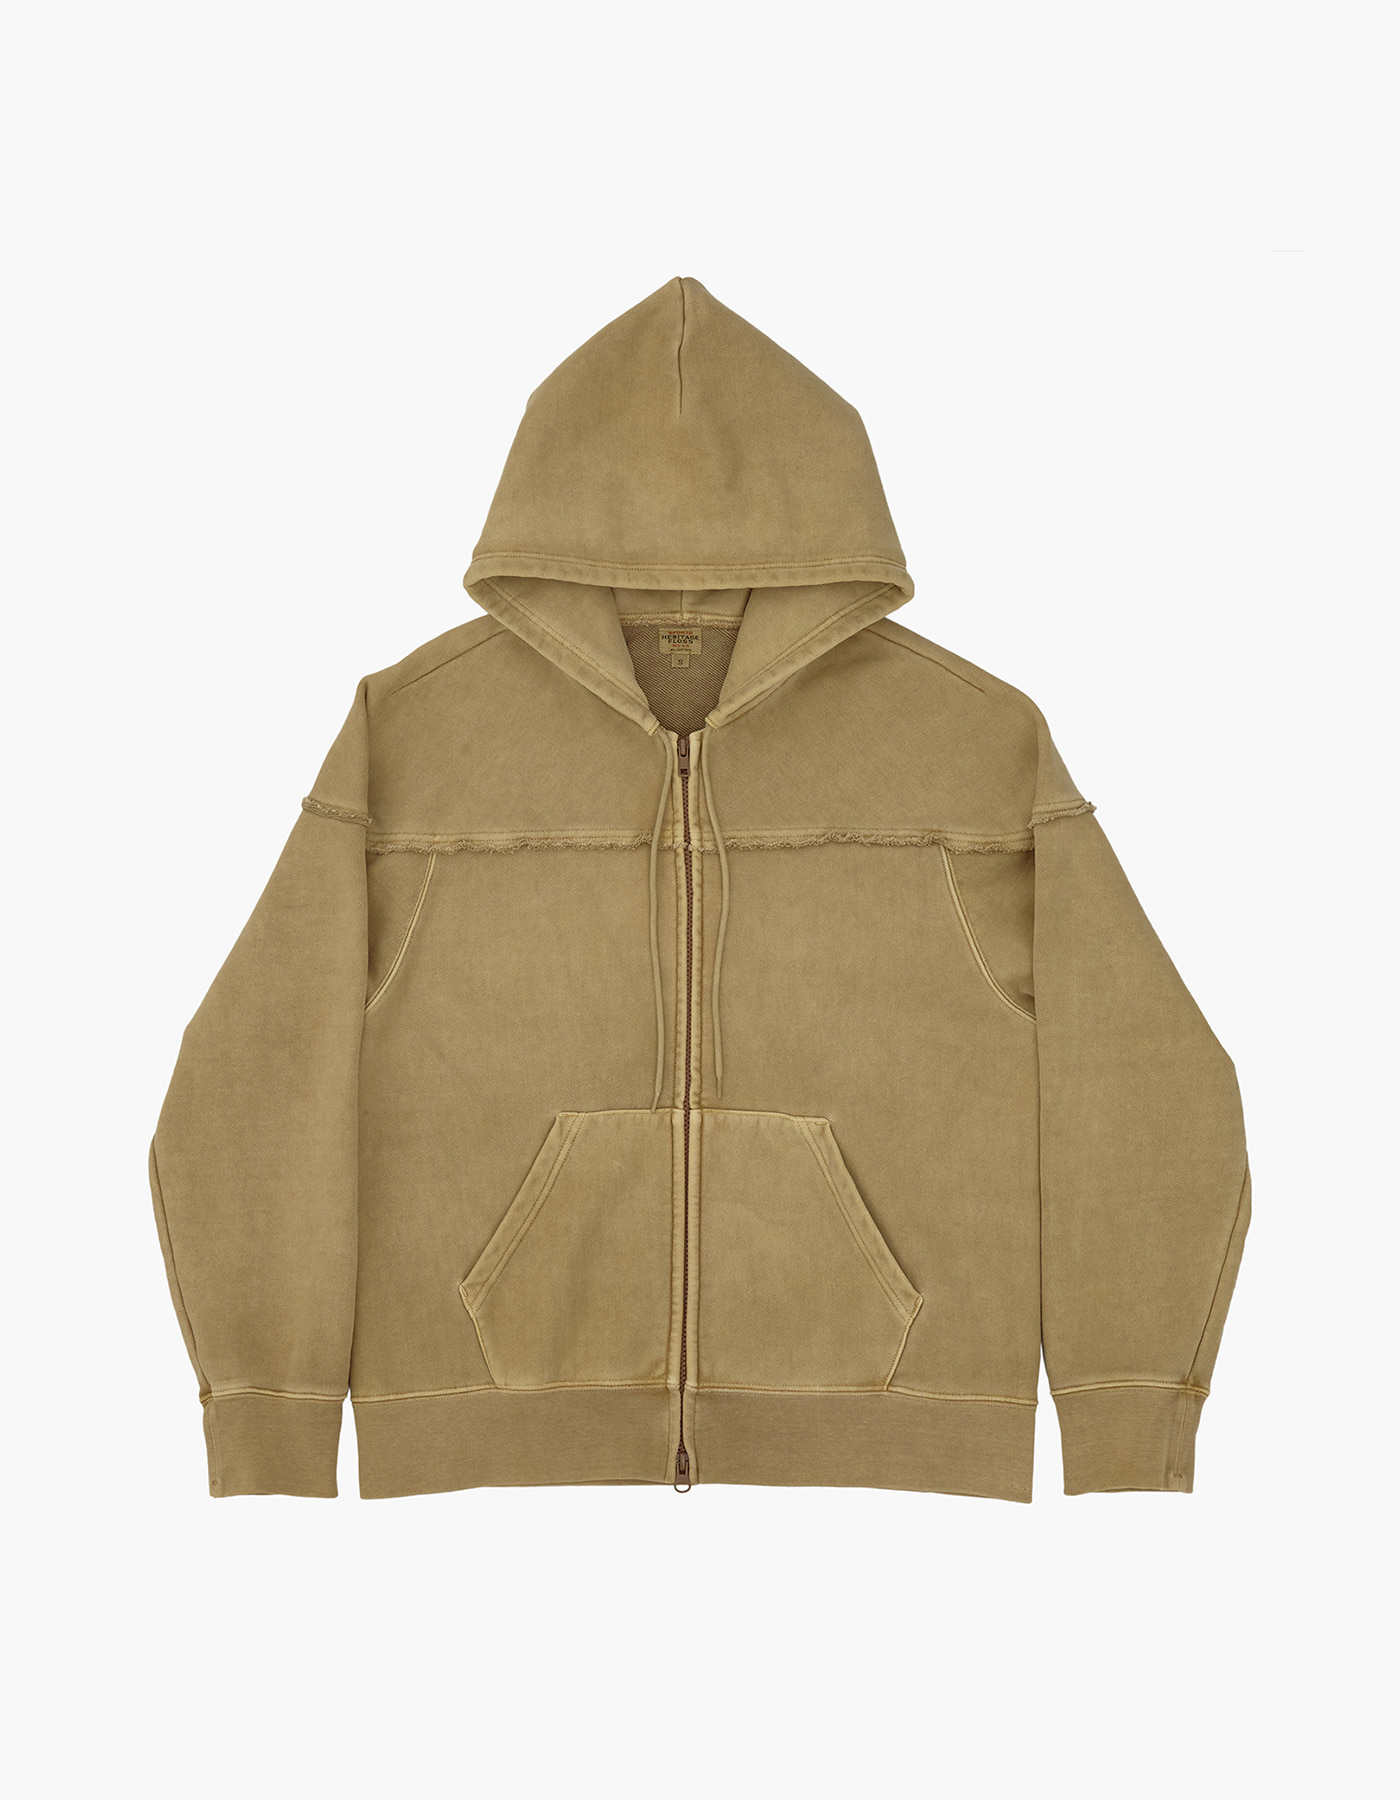 221 PIGMENT ZIP-UP / DESERT KHAKI